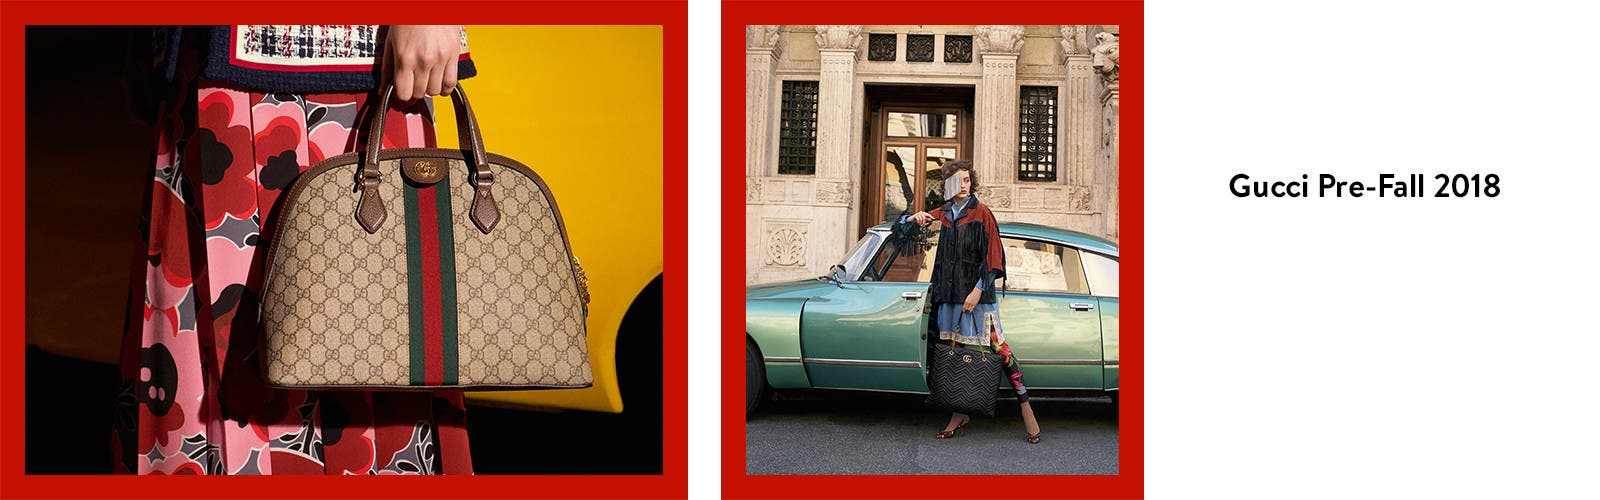 Gucci pre-fall 2018 handbags for women.